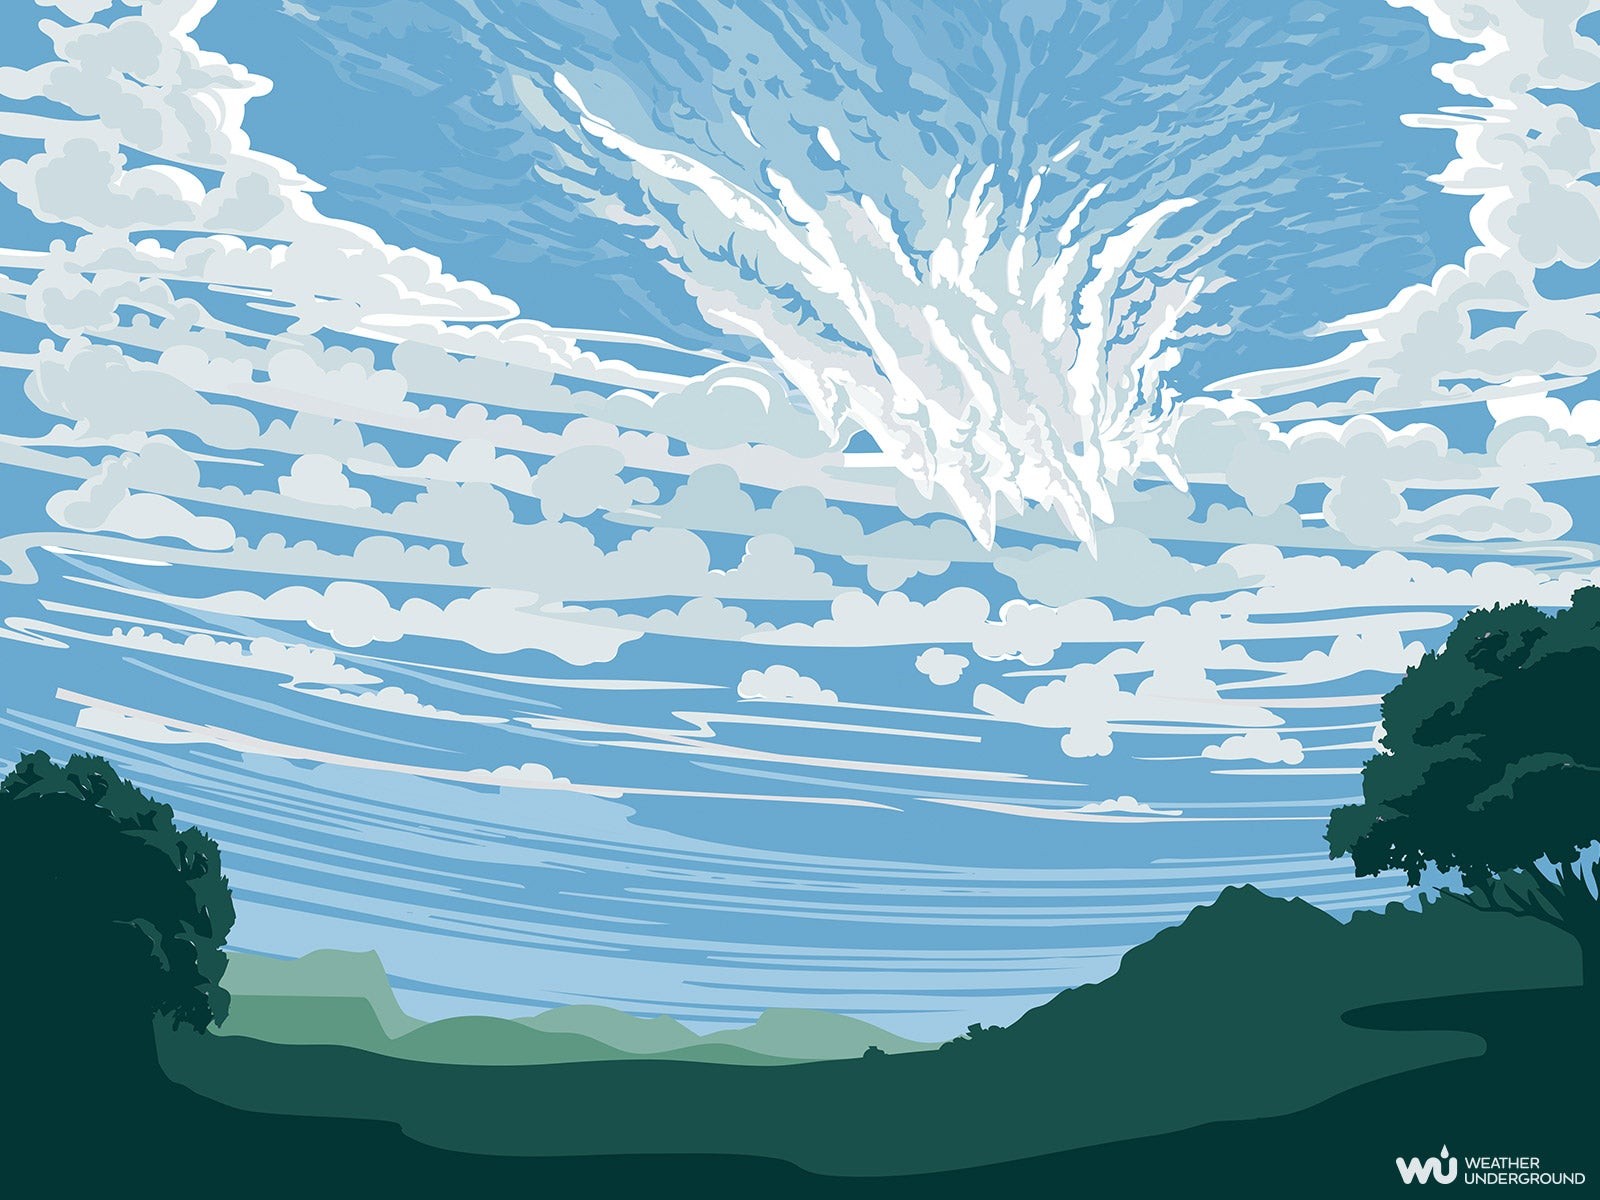 Fall Wallpaper For Android Phone Fallstreak Hole Weather Underground